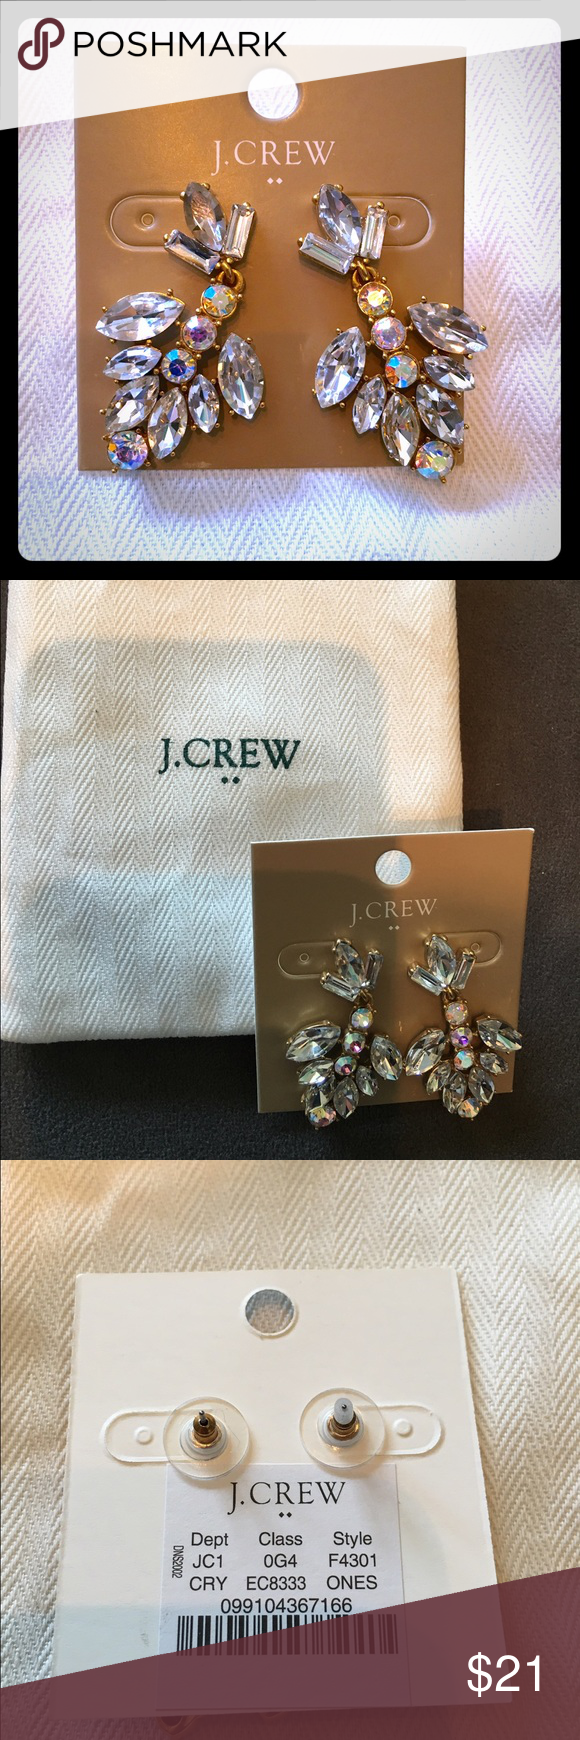 Classy J Crew Crystal earrings Sold out online! Gorgeous and never worn, these are perfect for a night out! Never worn and come with dust bag. Similar to styles at Kate spade and Zara, too. J. Crew Jewelry Earrings